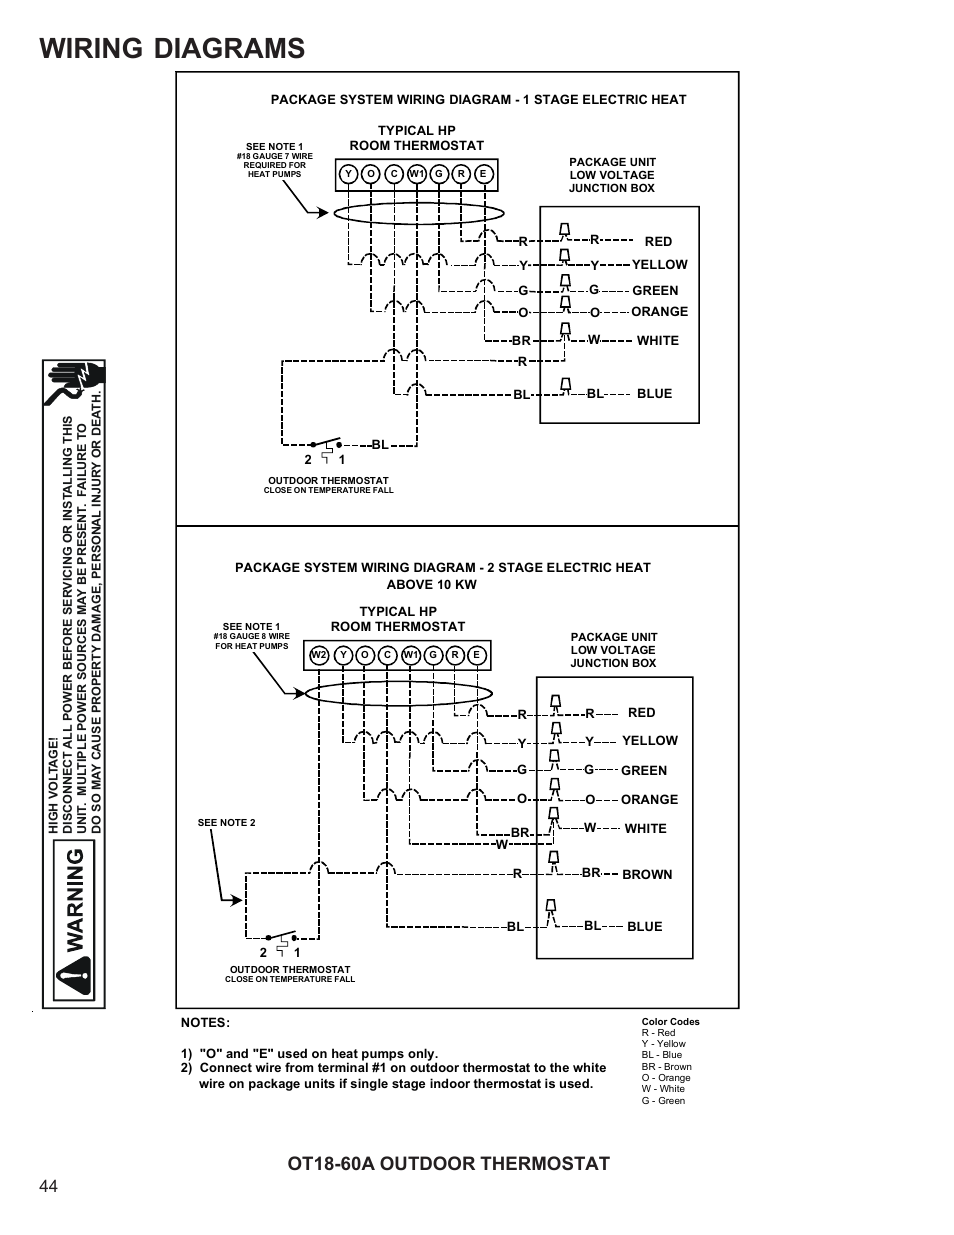 Wiring diagrams, Ot18-60a outdoor thermostat | Goodman Mfg R-410A User  Manual | Page 44 / 47